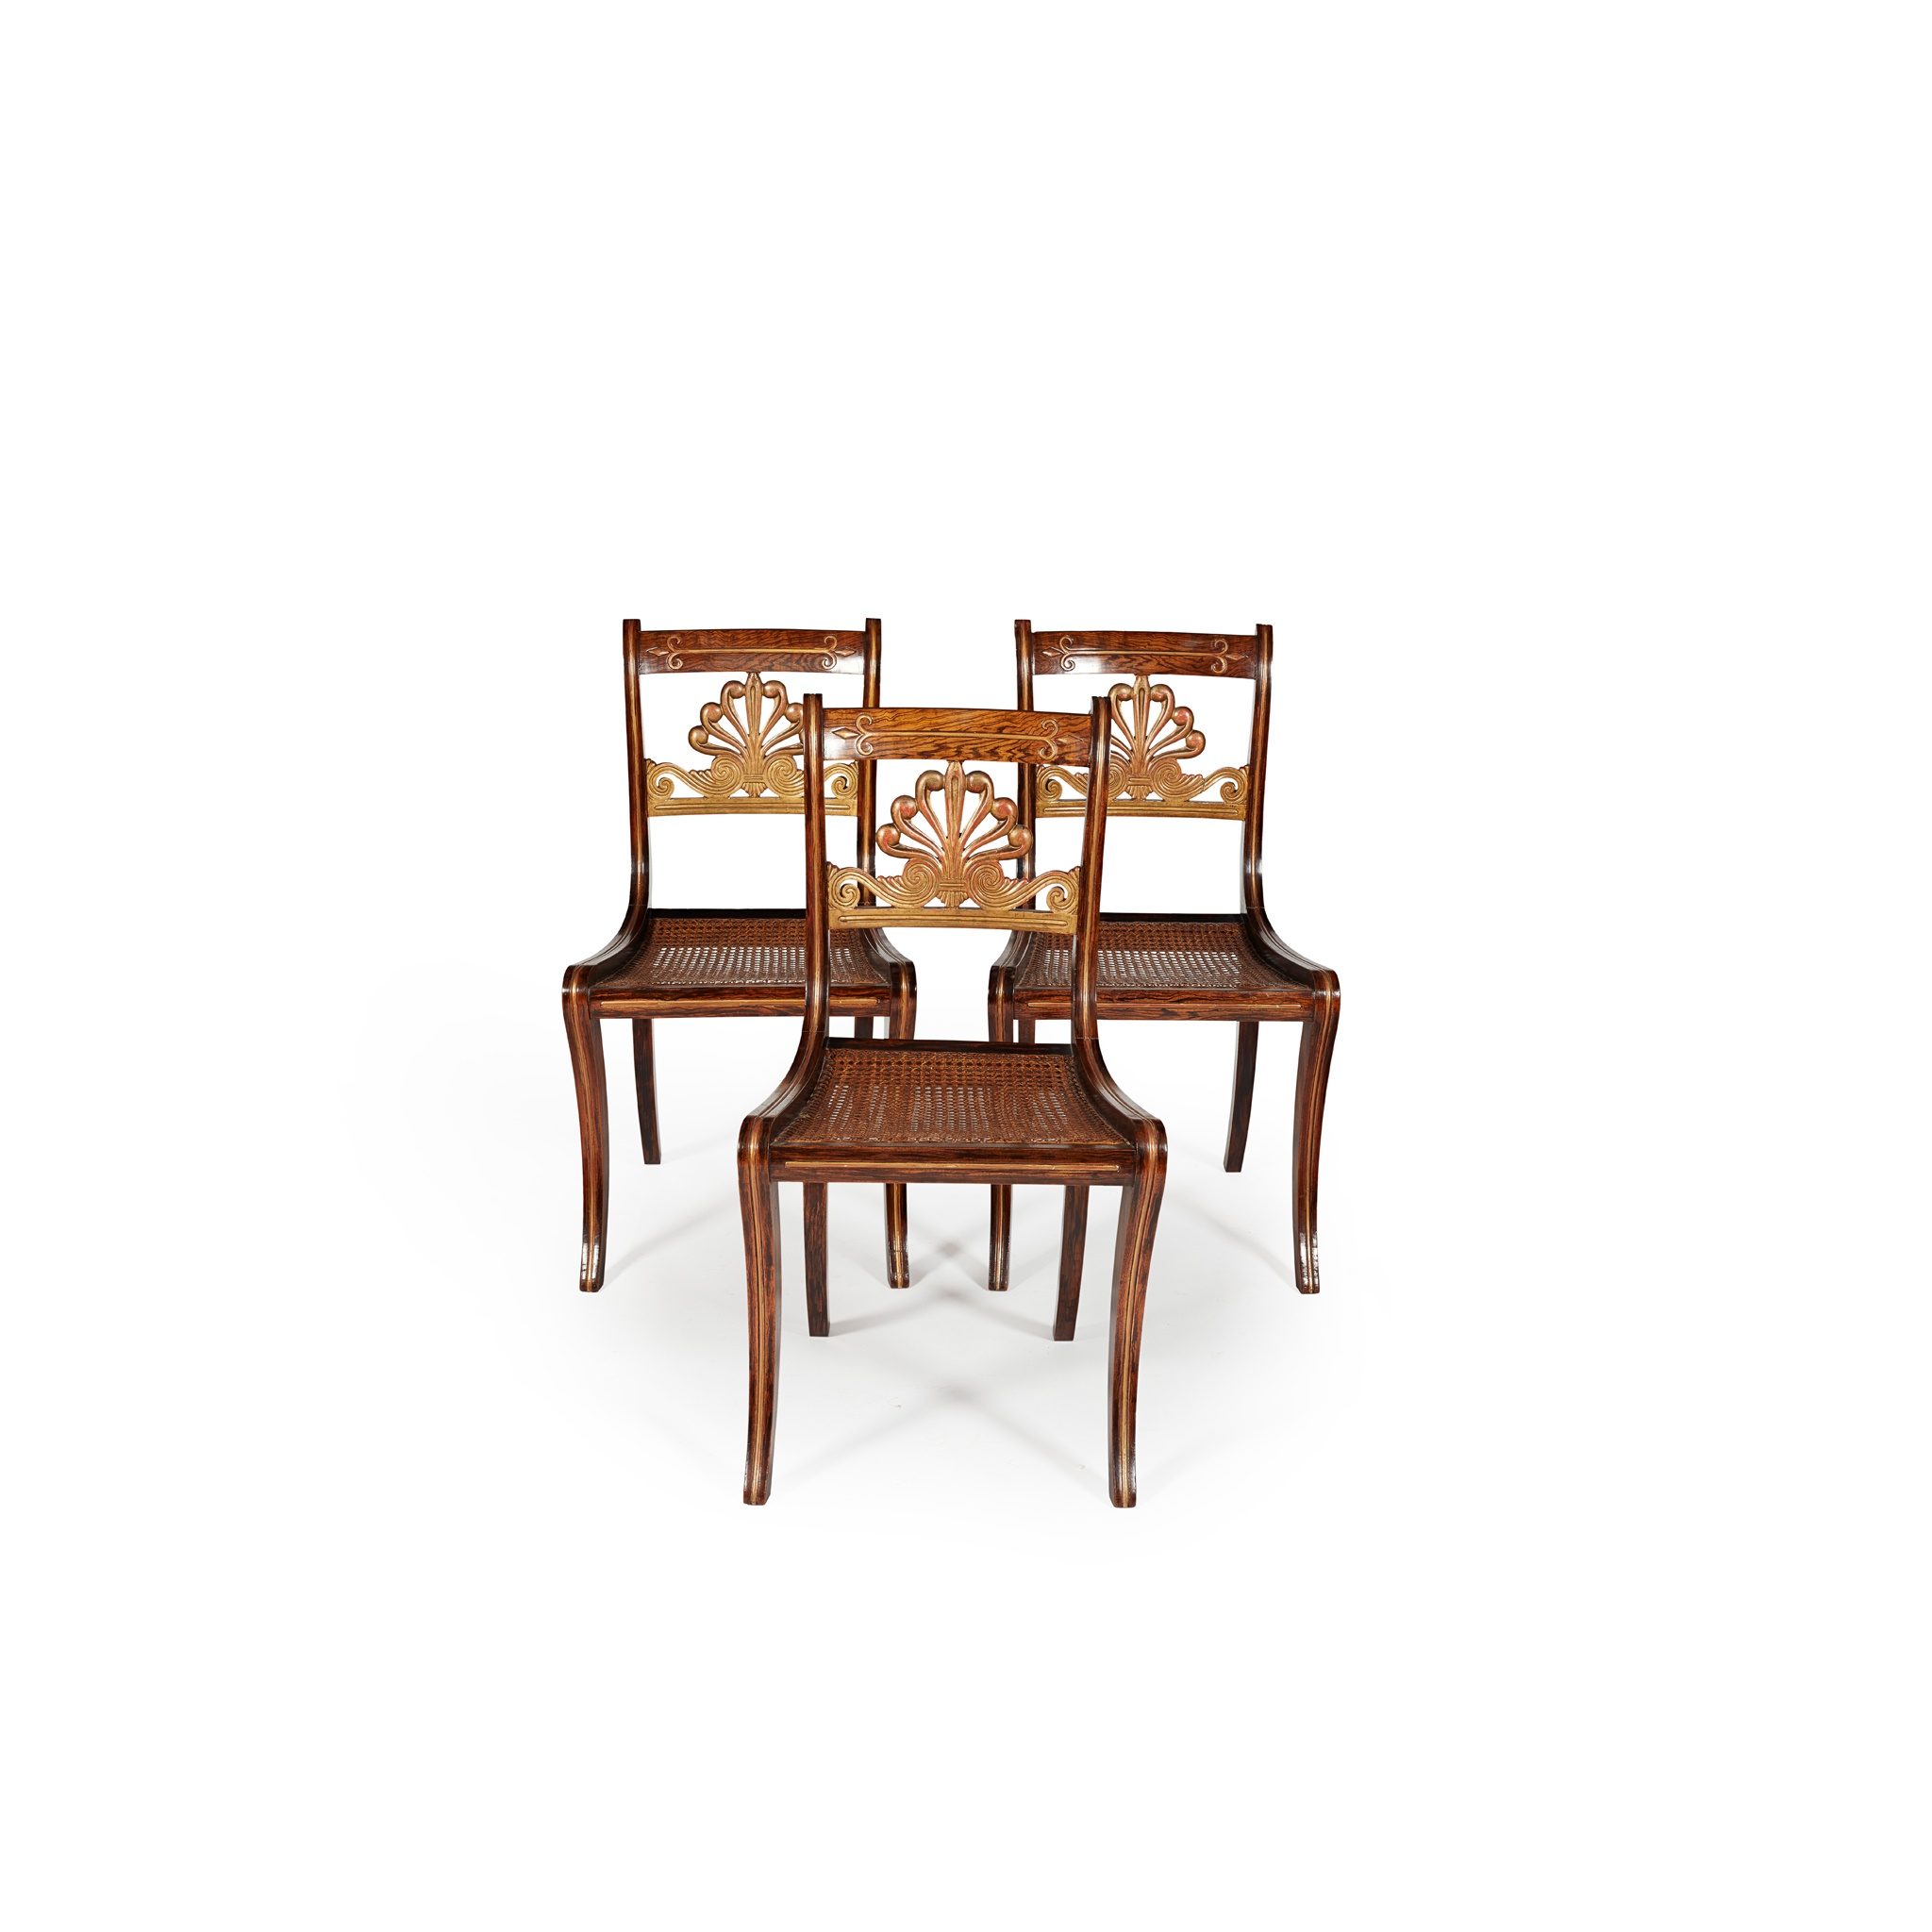 Y SET OF THREE ROSEWOOD GRAIN-PAINTED AND GILT SIDE CHAIRS EARLY 19TH CENTURY - Image 2 of 2